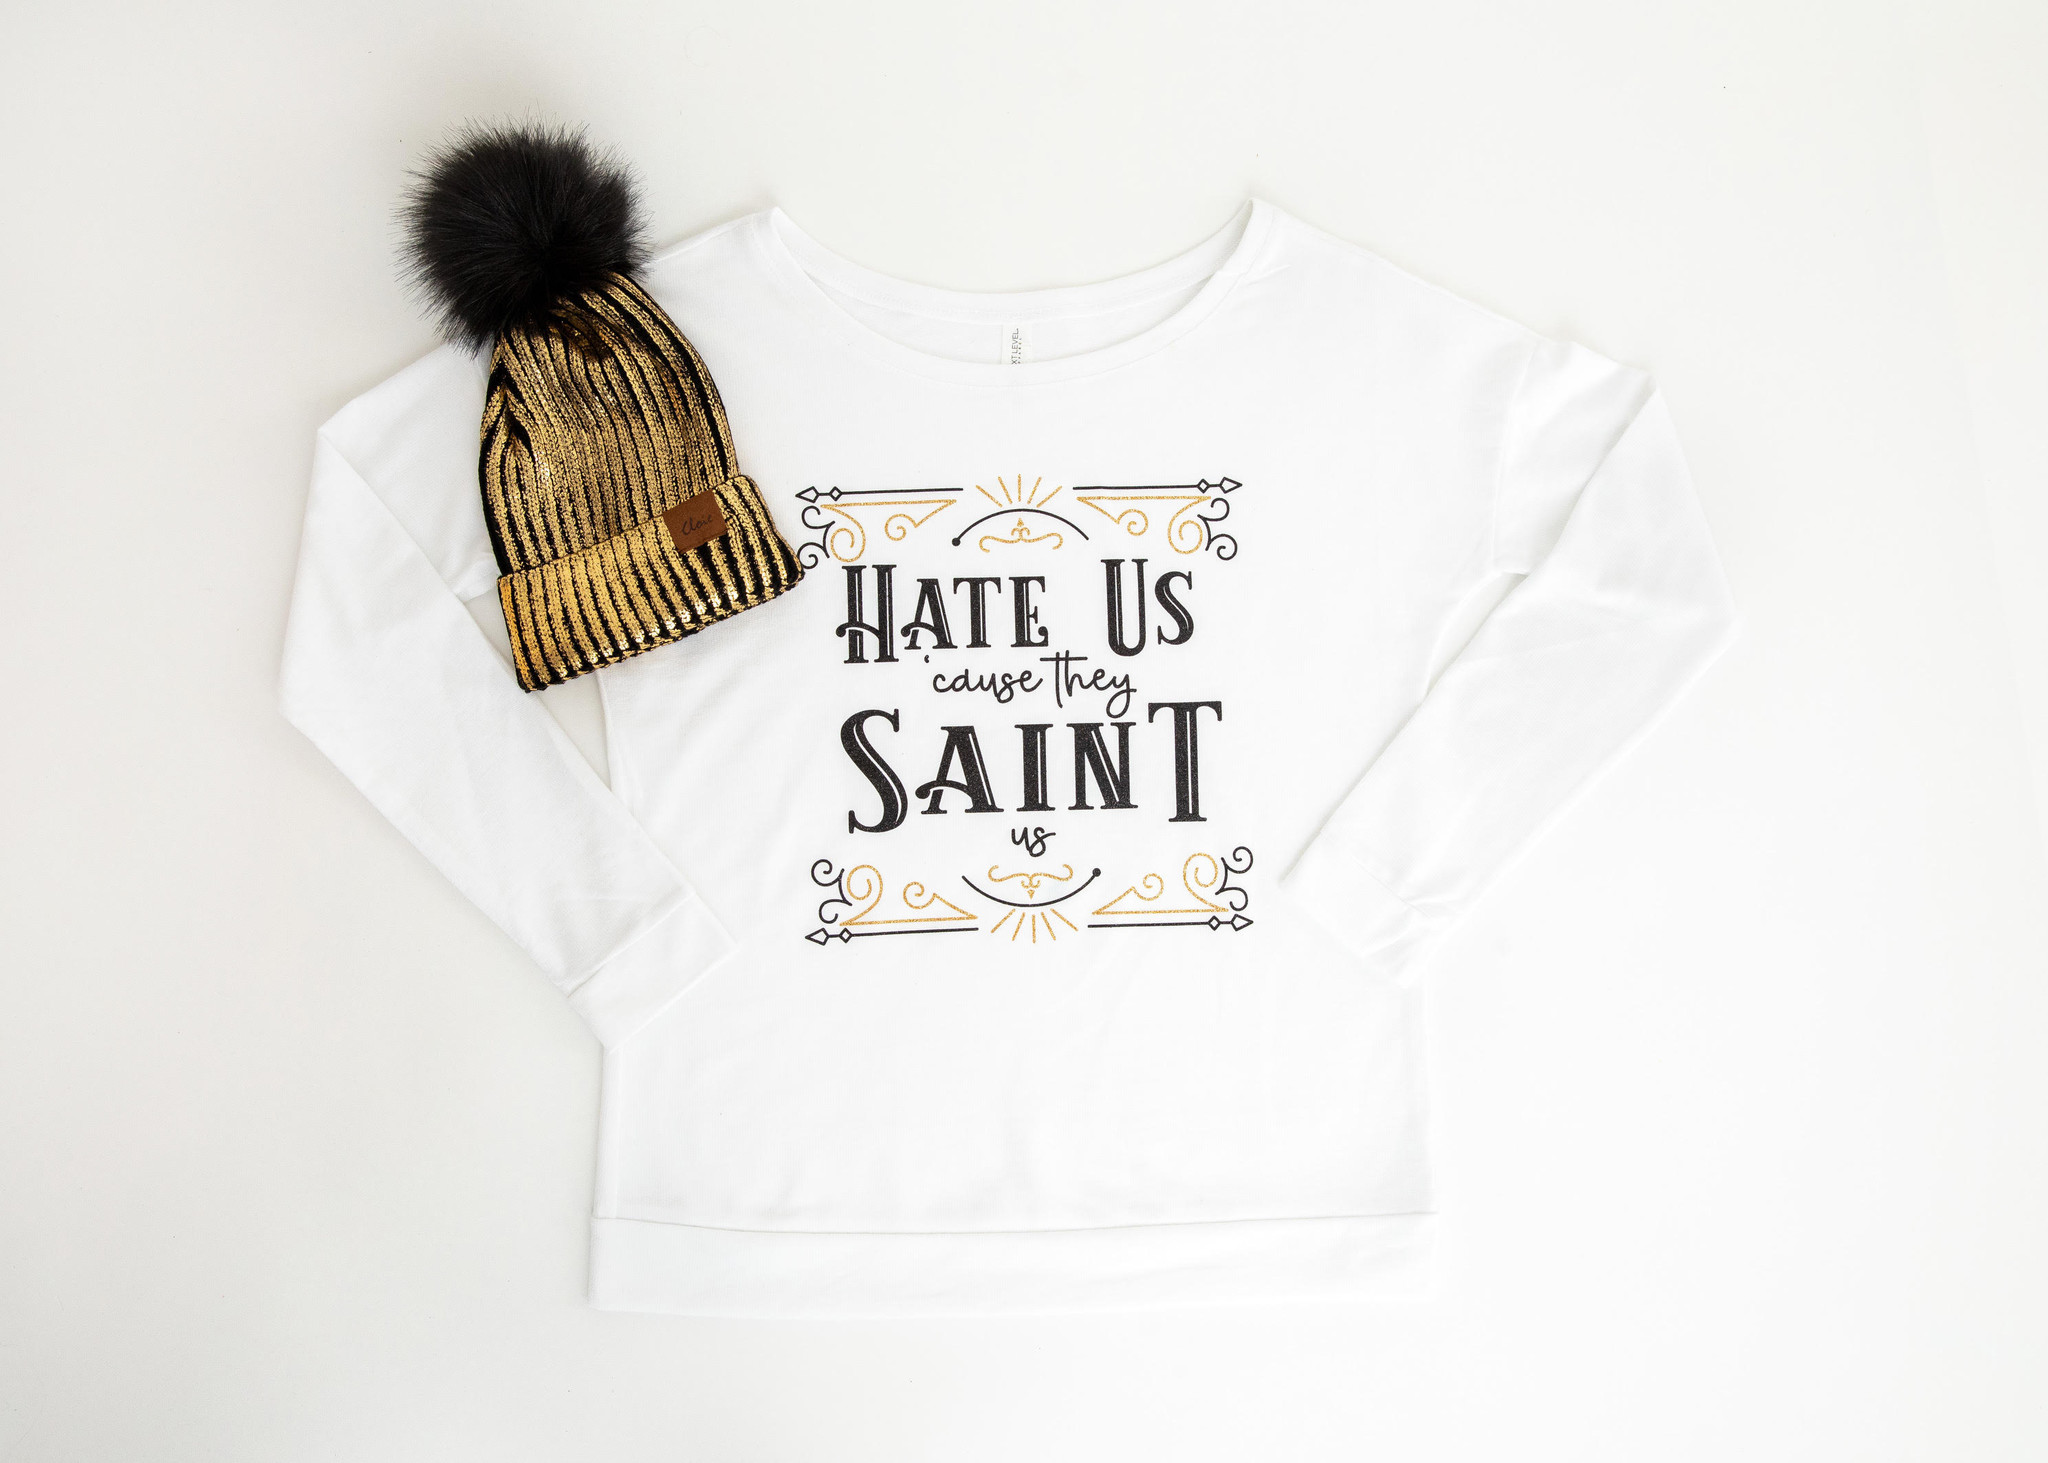 Hate Us Cause They Saint Us Sweatshirt